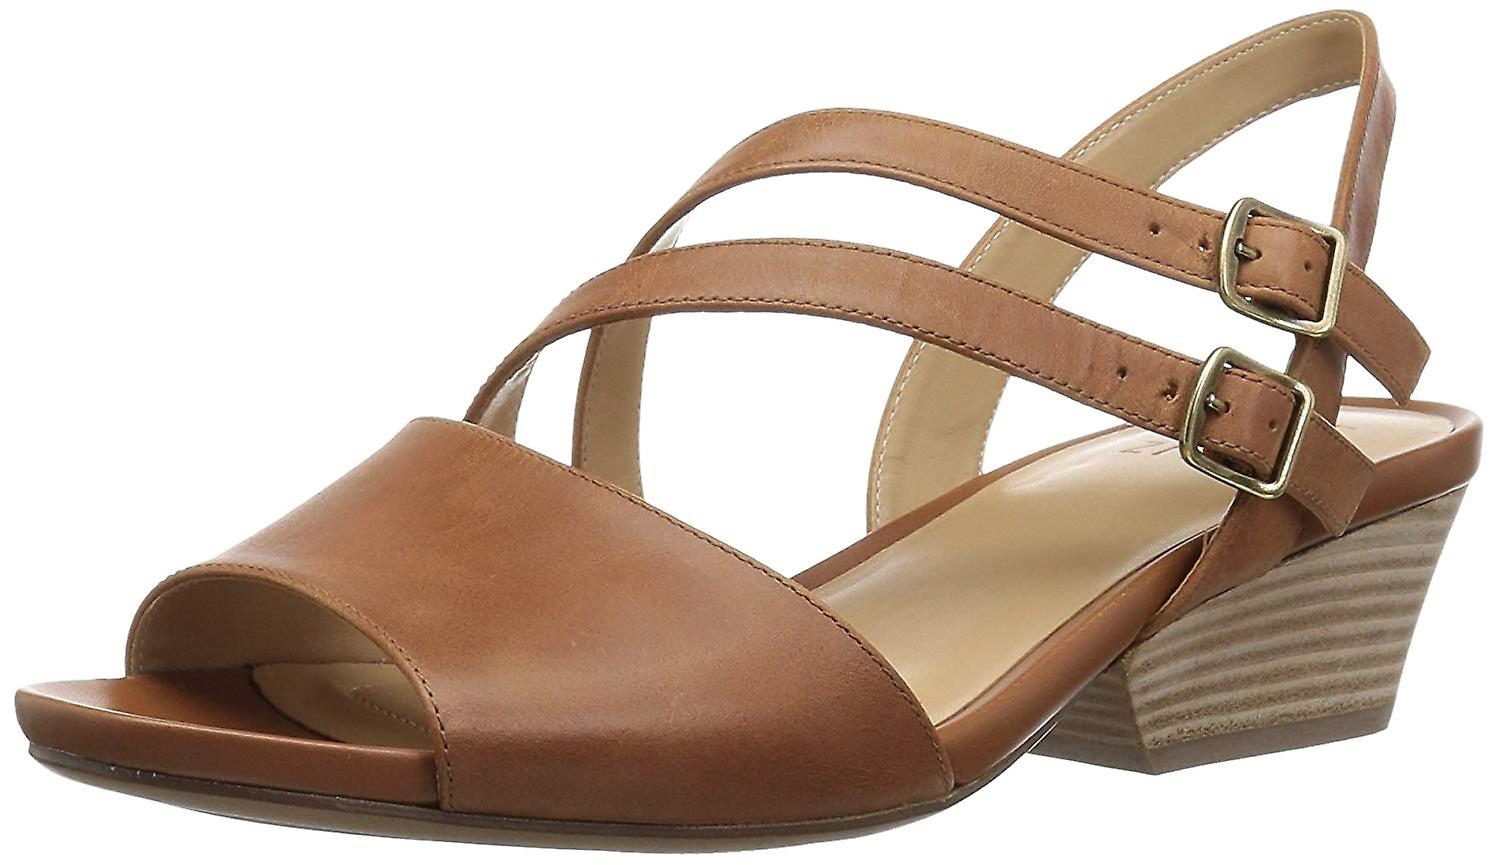 Naturalizer Womens GIGI Leather Open Toe Casual Ankle Strap Sandals